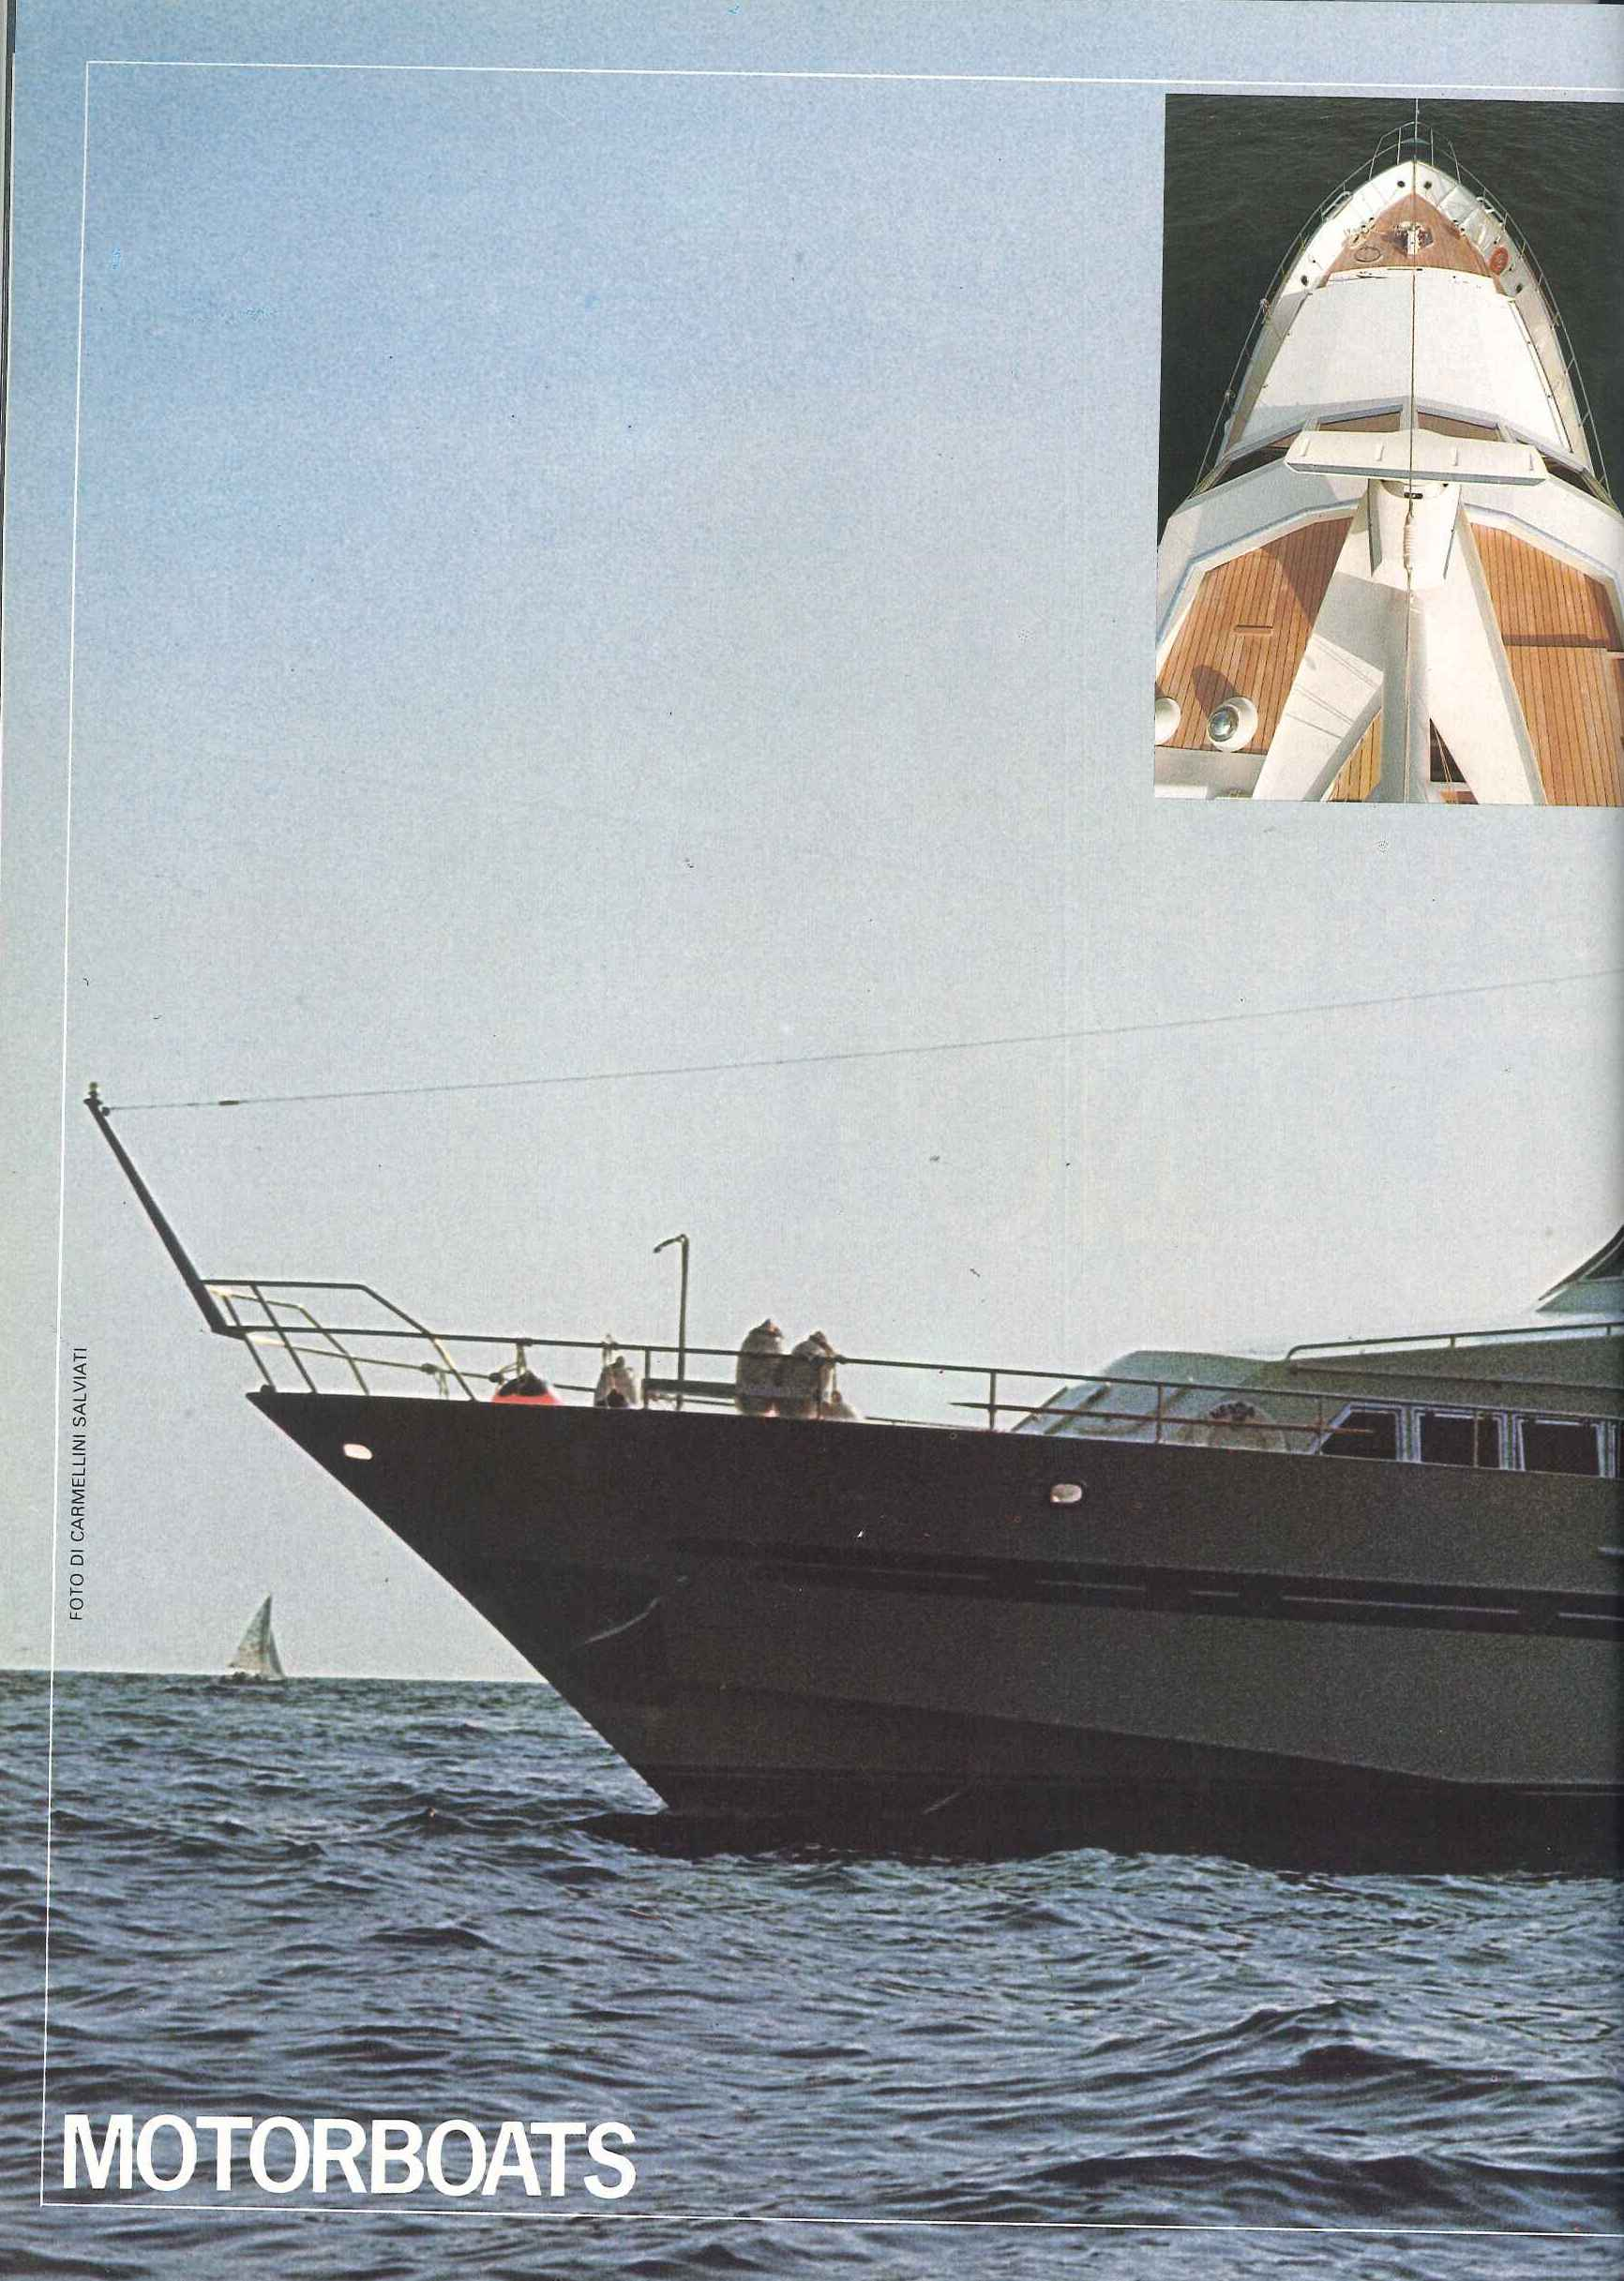 1977 09 PRESS MOTORBOATS UOMO MARE (1).jpg